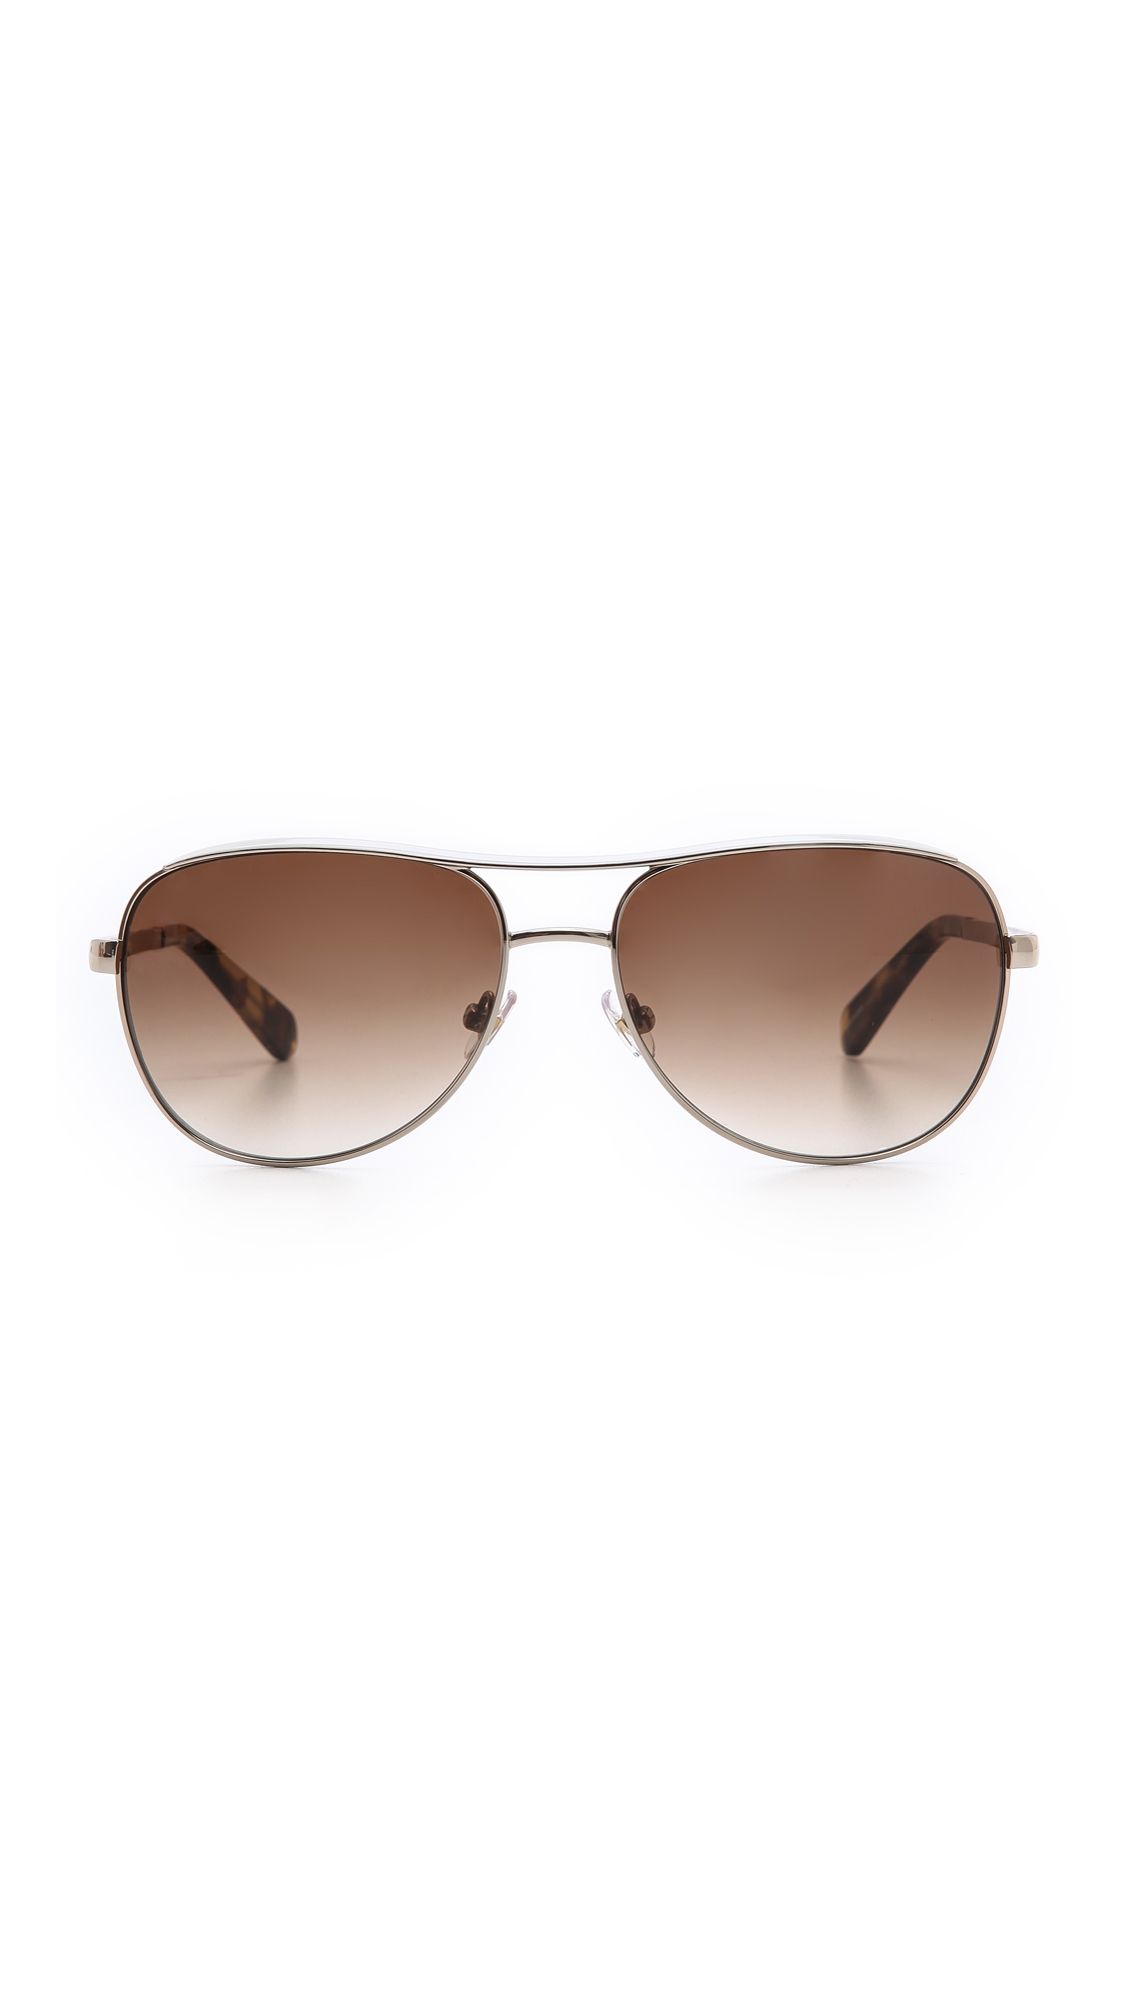 0af4ccc019 Kate Spade New York Dusty Sunglasses